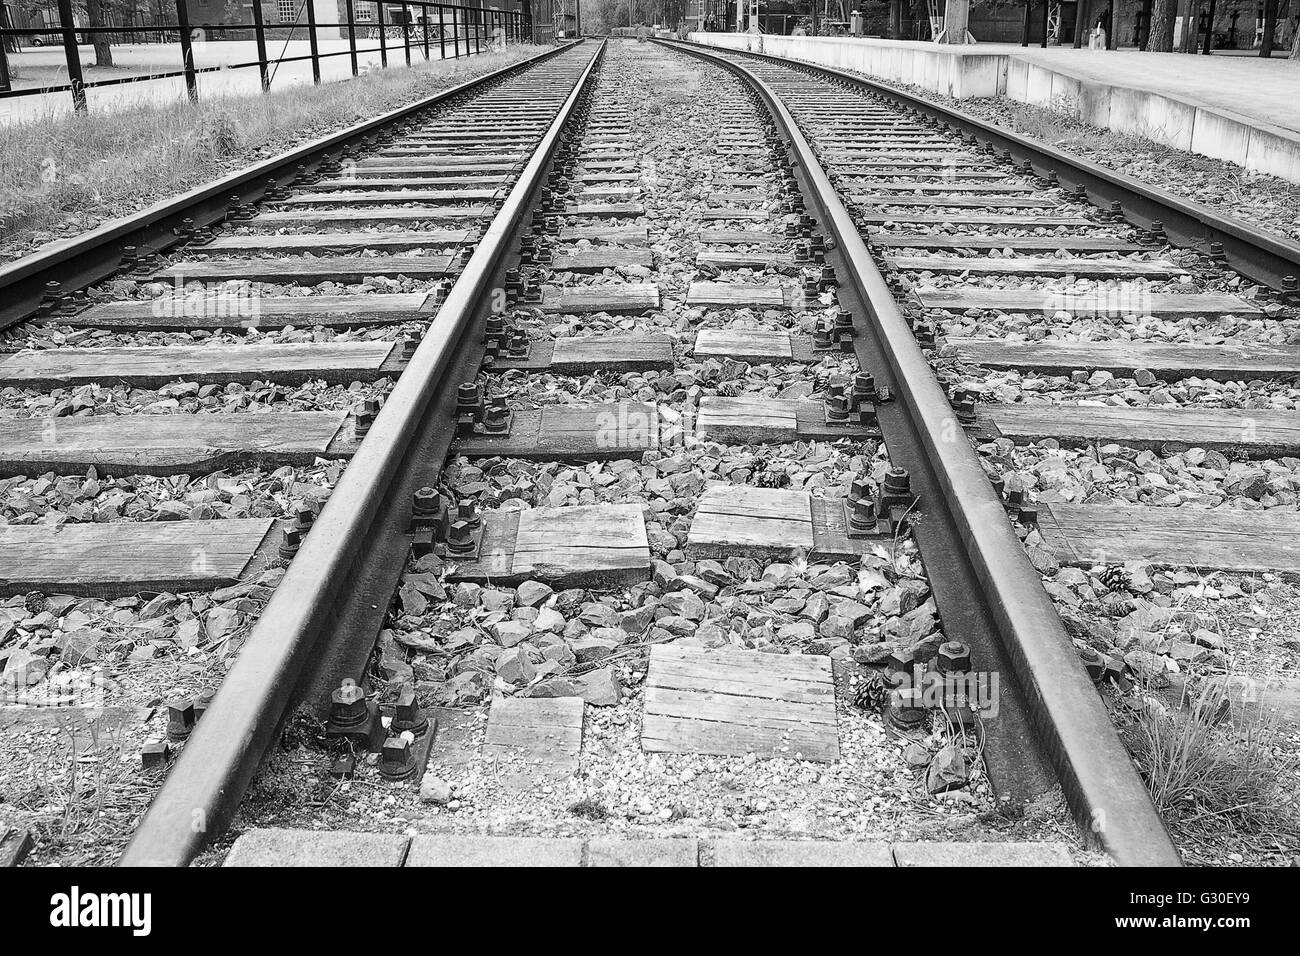 Railway tracks on an abandoned industrial site. - Stock Image